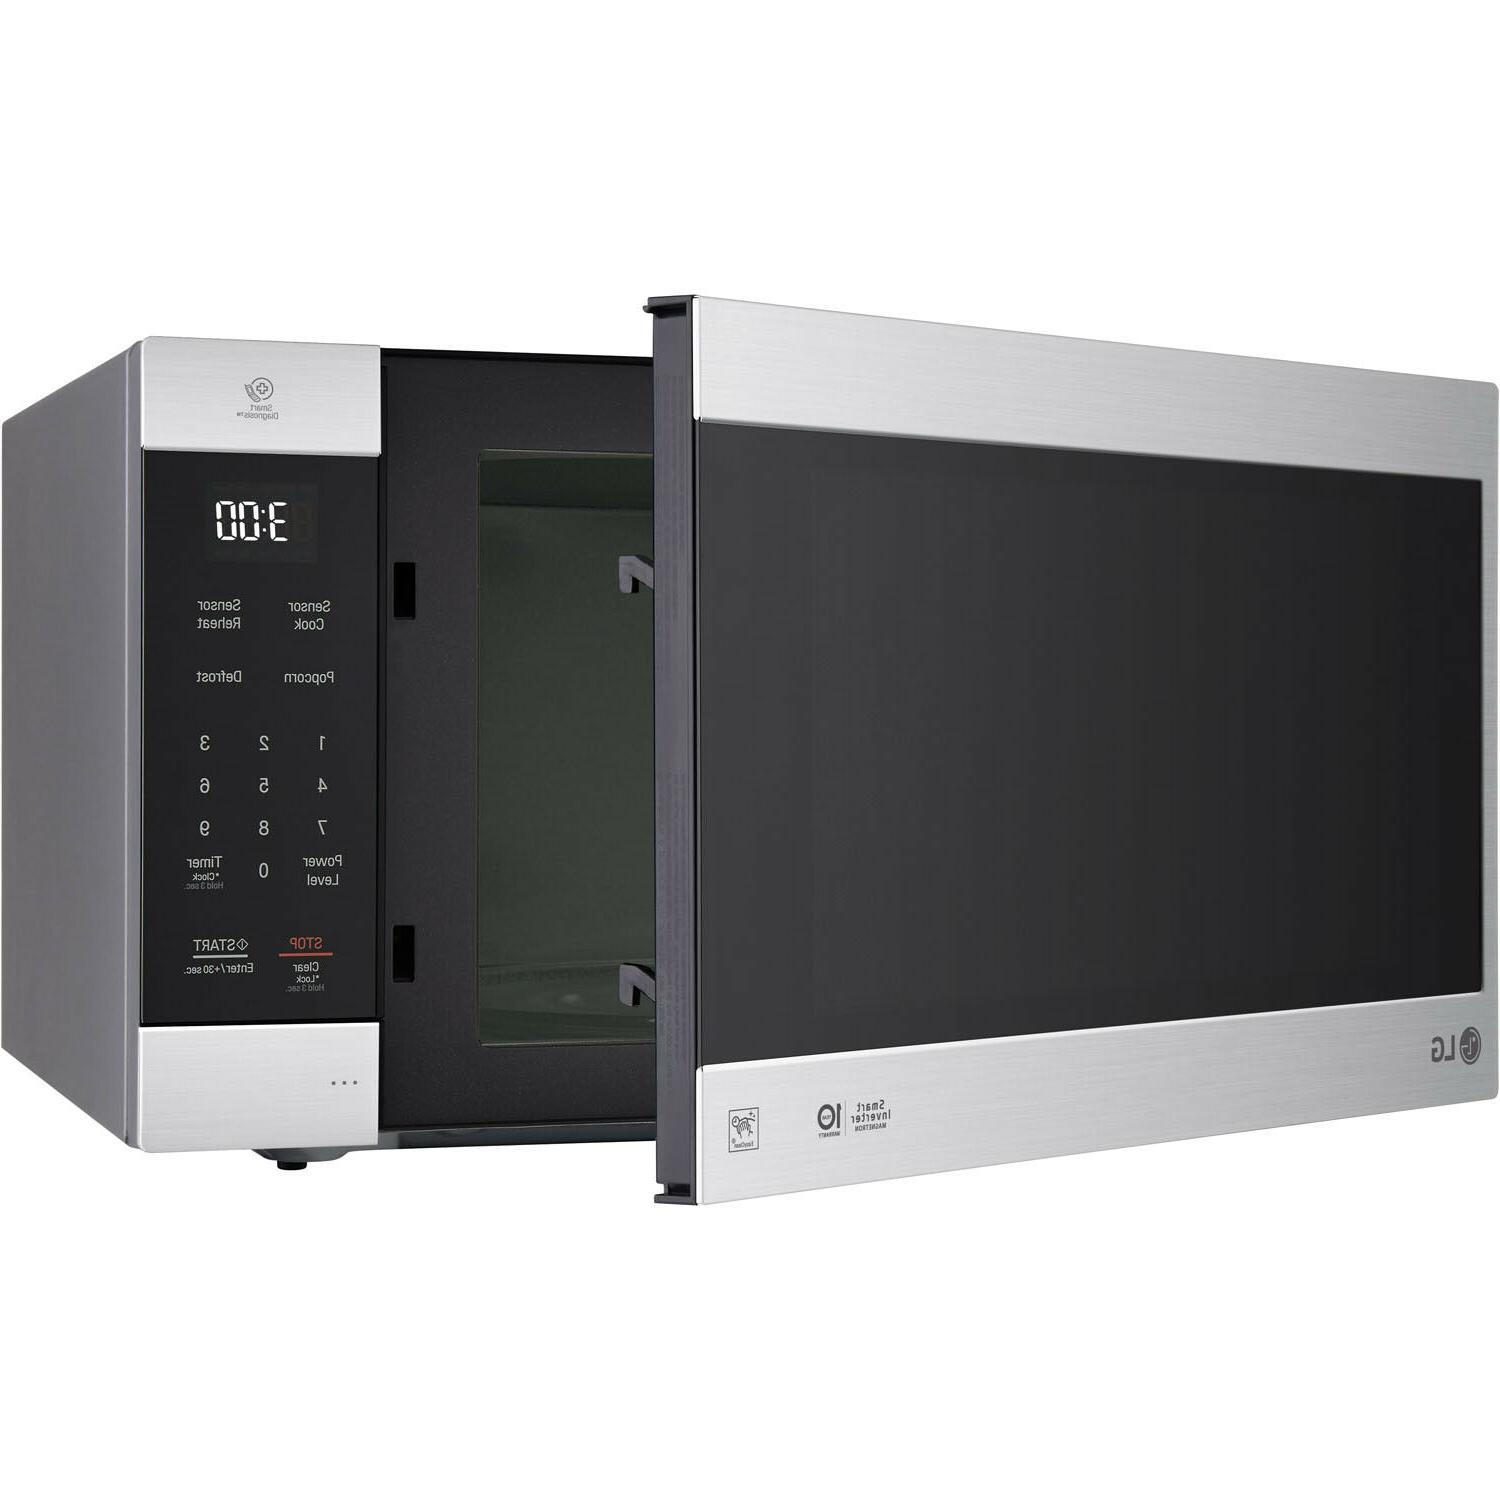 LG NeoChef Ft 1200 Microwave-16 in power levels